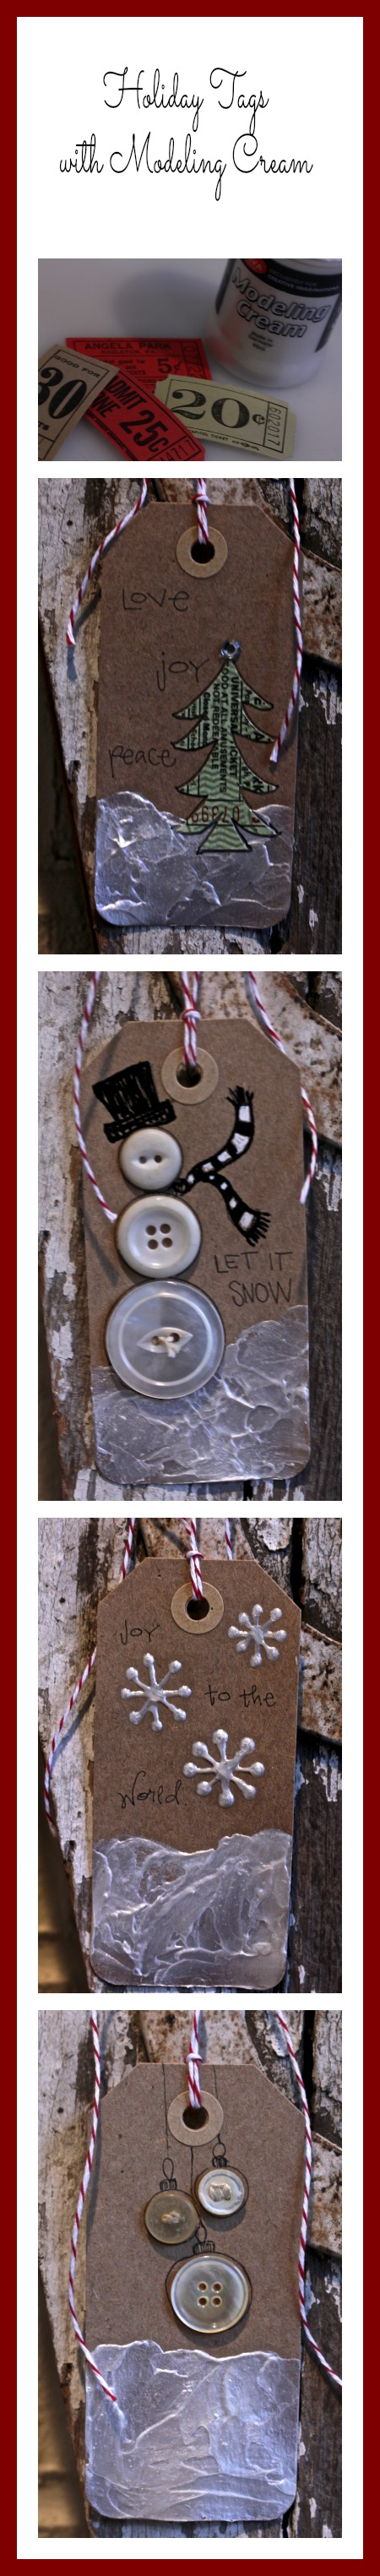 Holiday Tags with Viva Decor's Modeling Cream